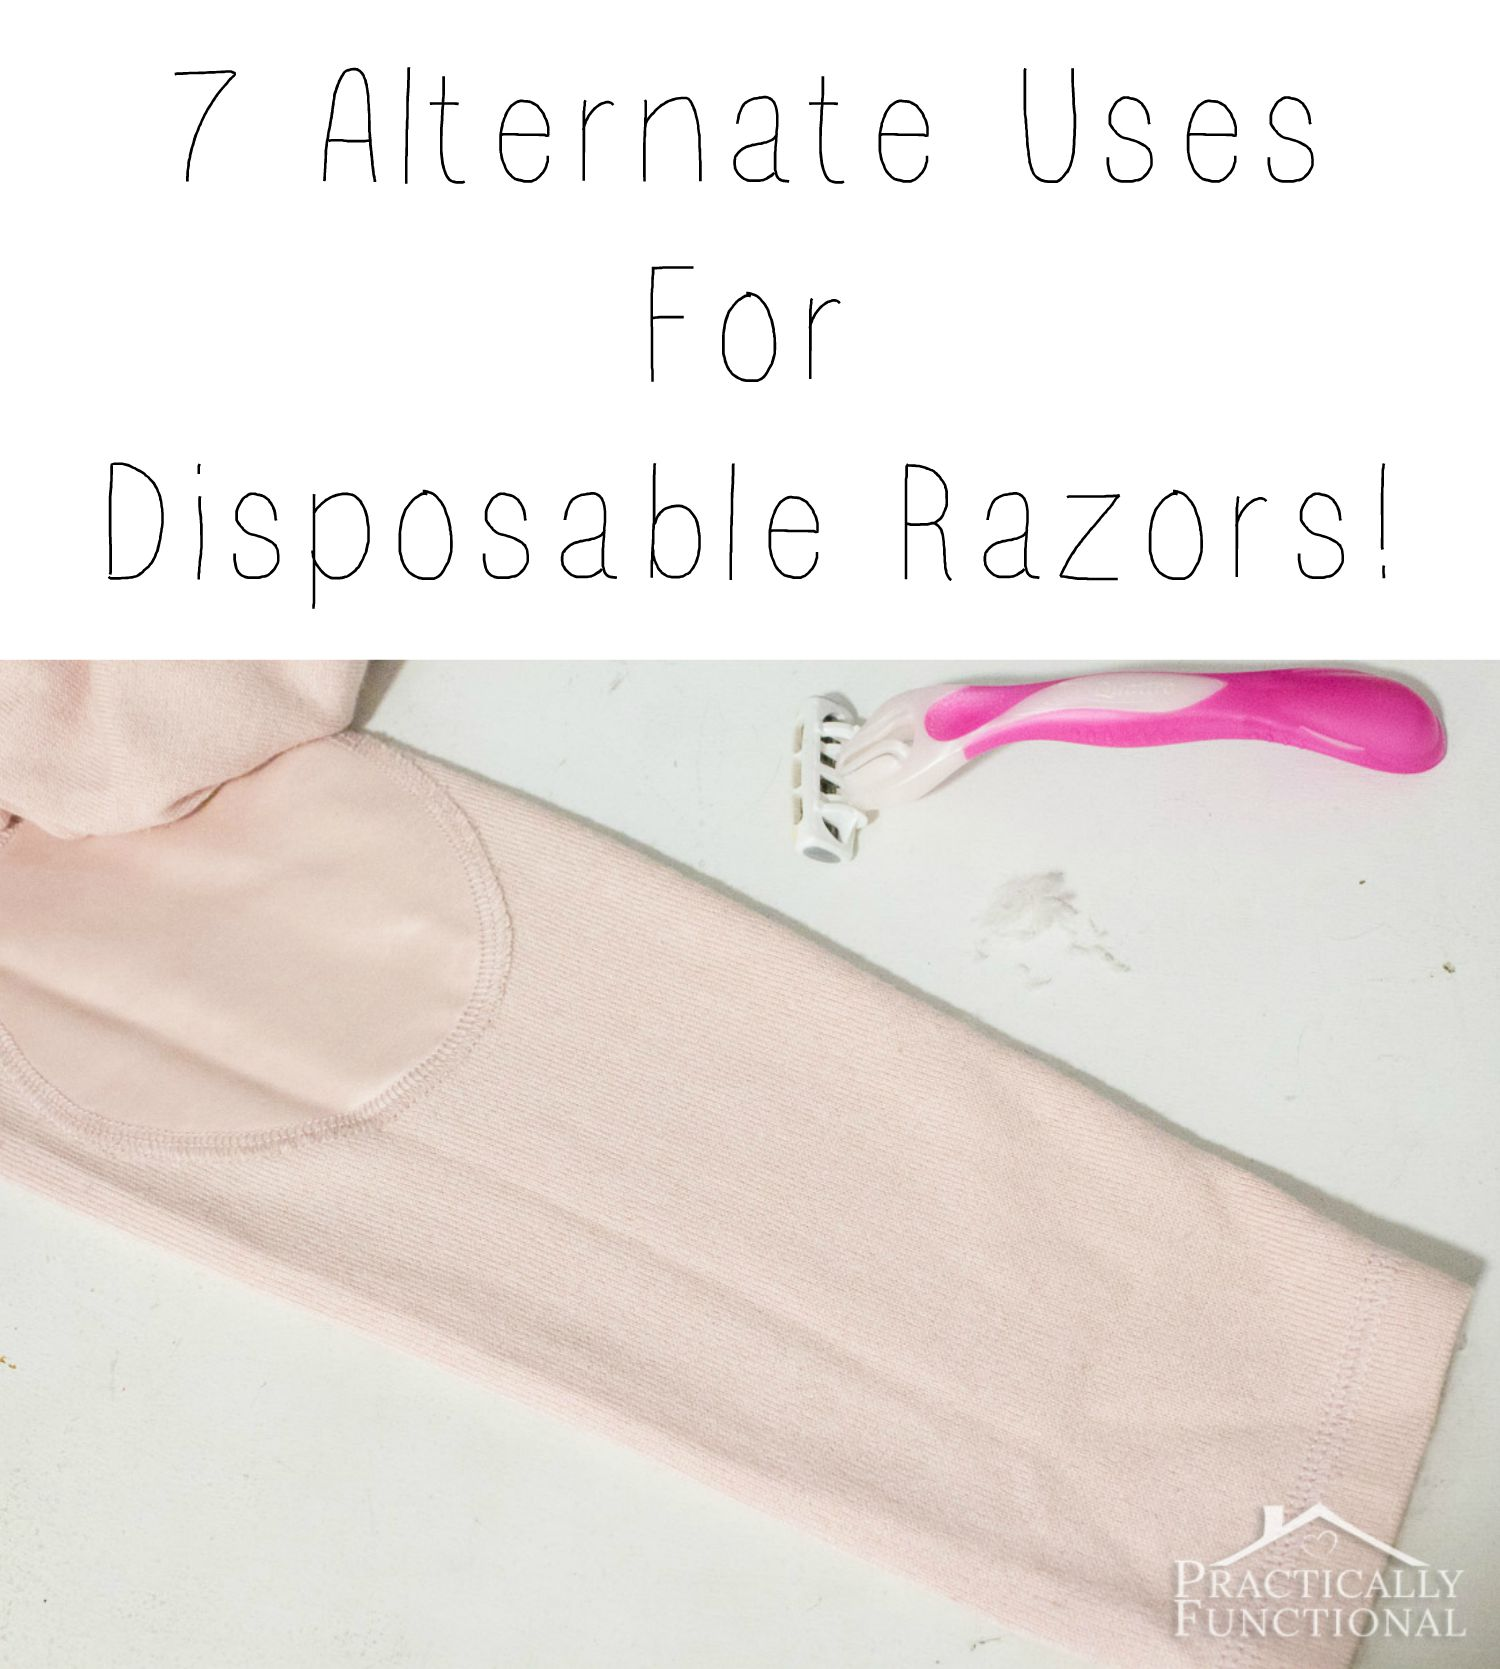 Check out these 7 alternate uses for disposable razors!